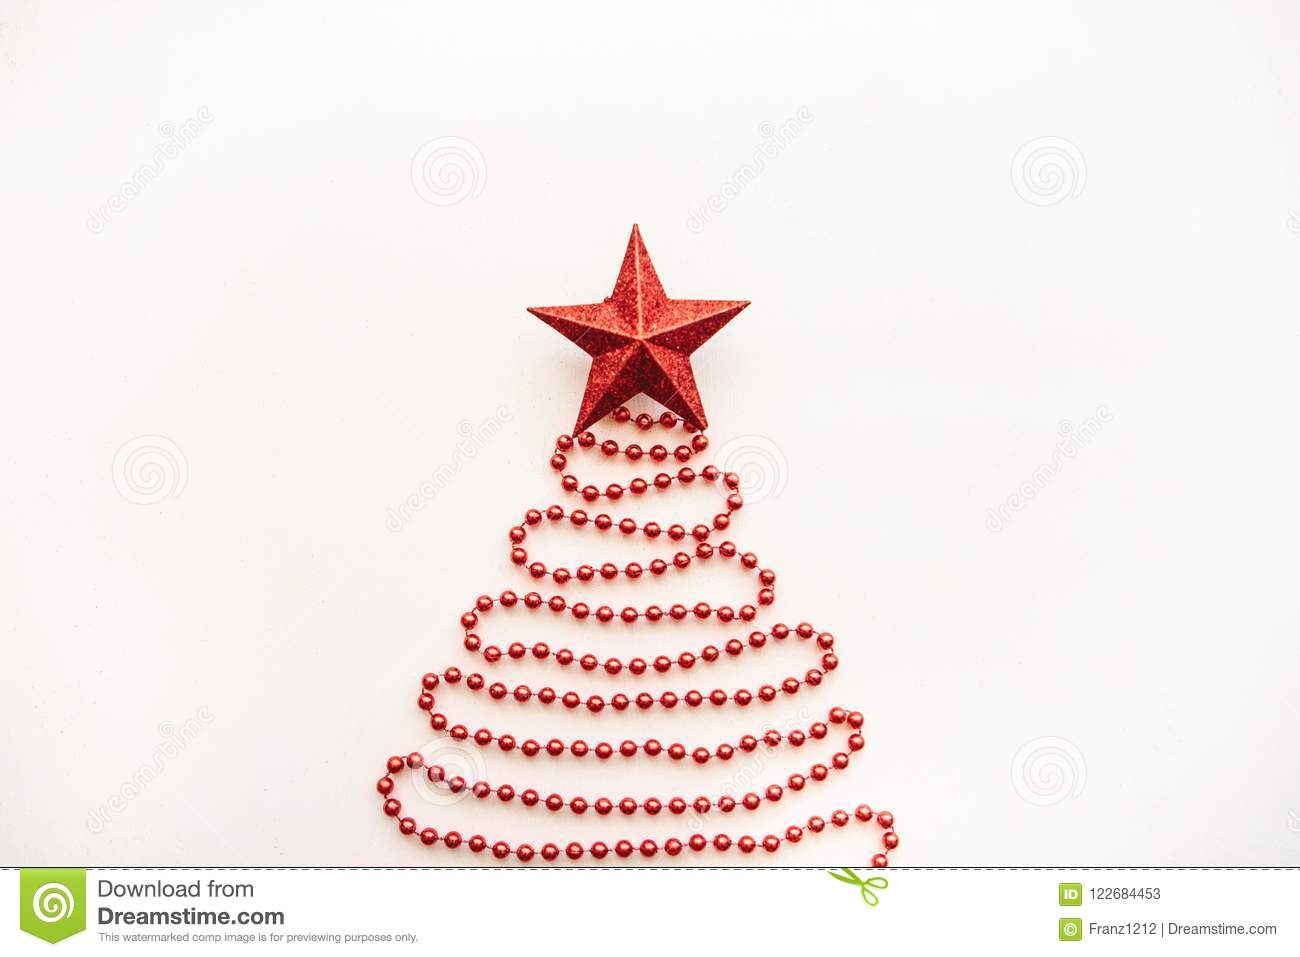 creative idea in minimalistic style for christmas or new year themes christmas fir tree from beads and a star on top festive concept